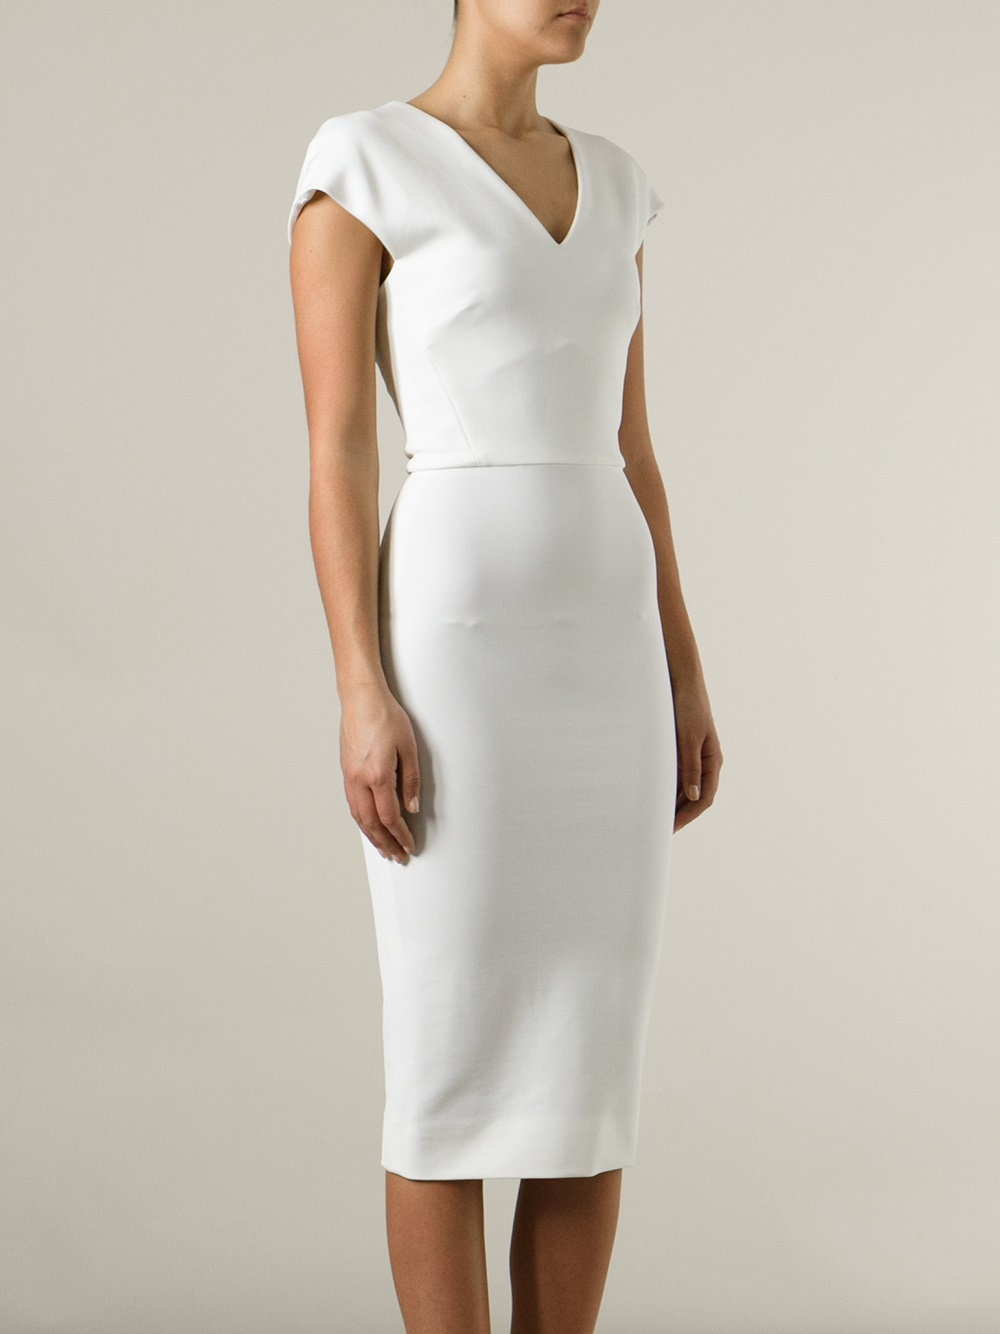 Victoria Beckham White Fitted Pencil Dress